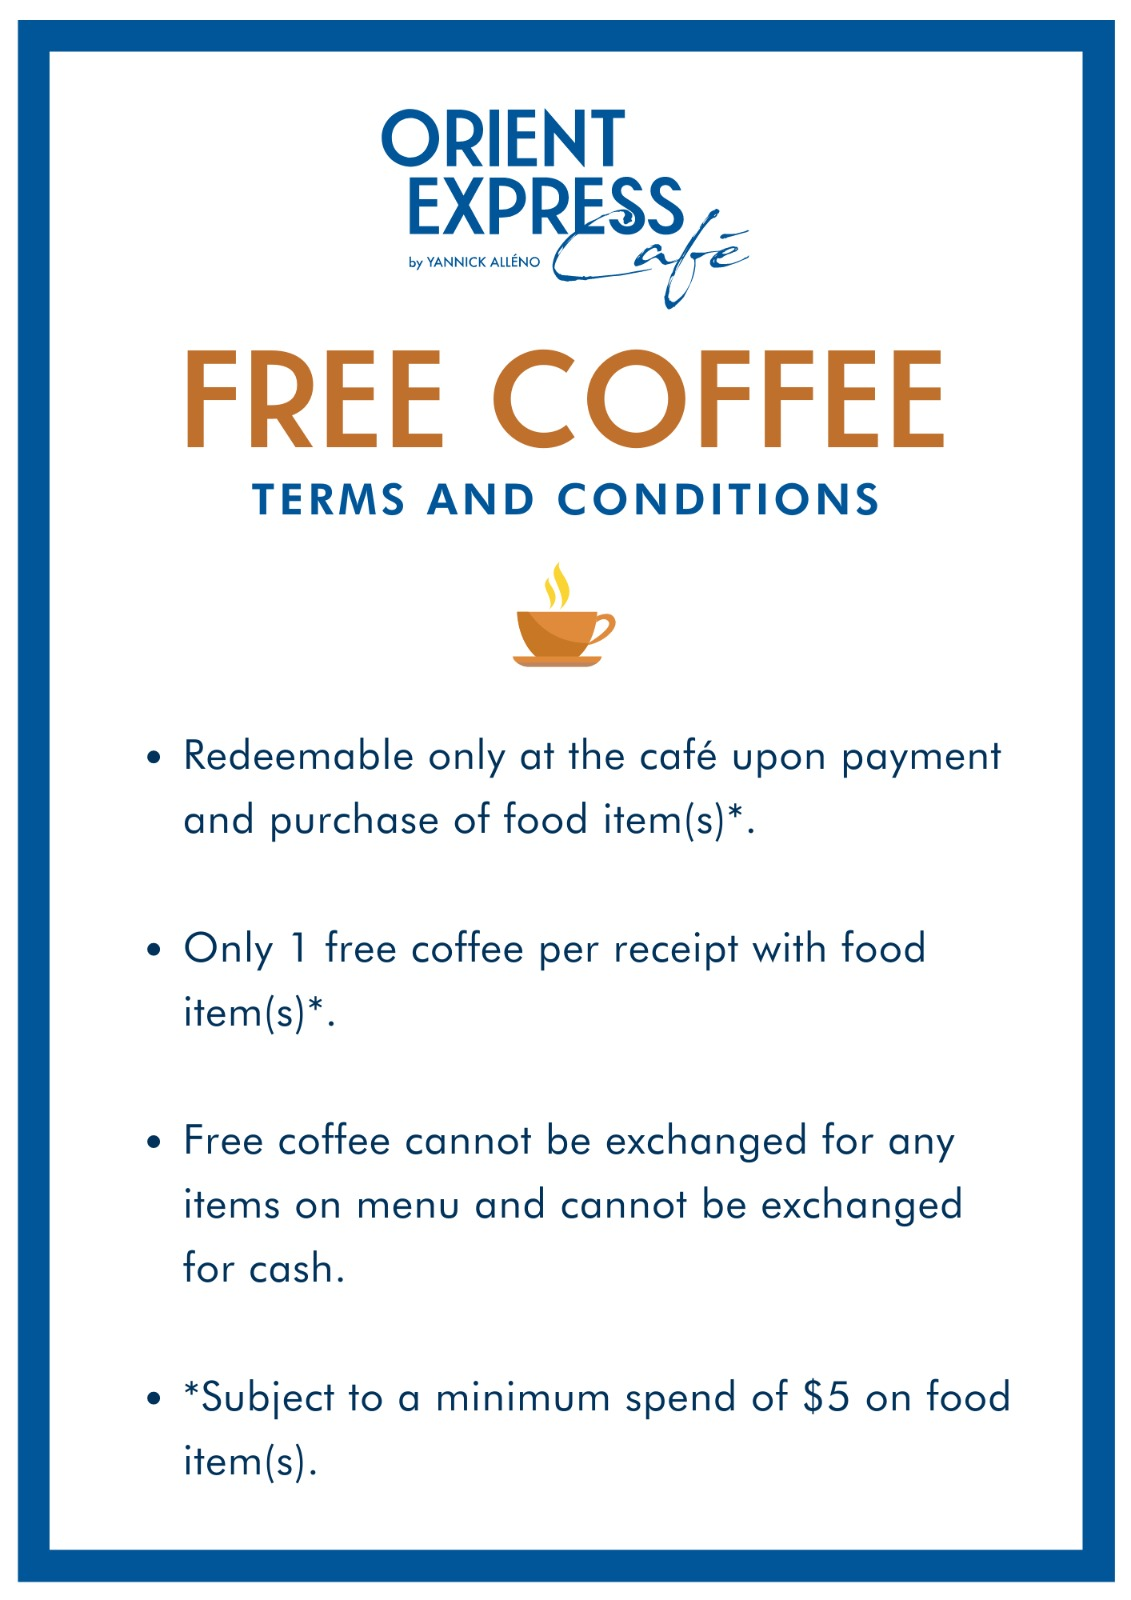 Free coffee with purchase at Orient Express Café by Yannick Alléno T&Cs